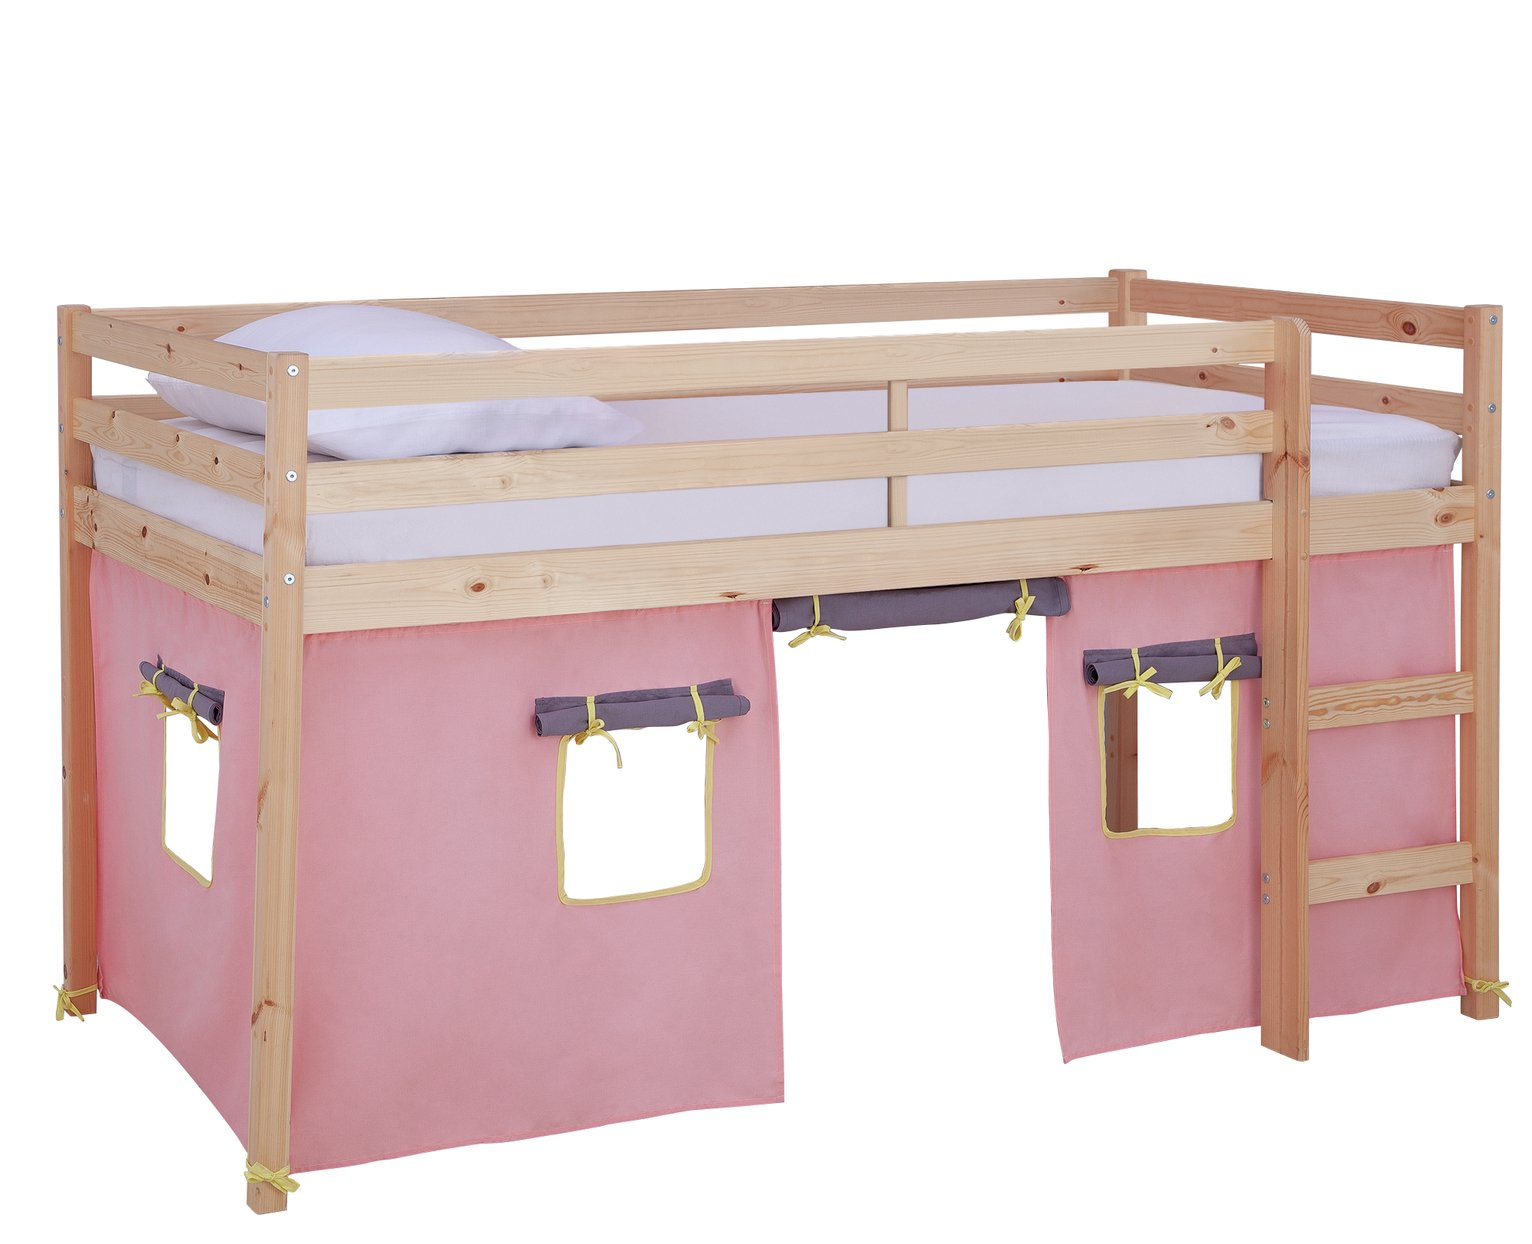 Argos Home Kaycie Pine Mid Sleeper with Rose Tent